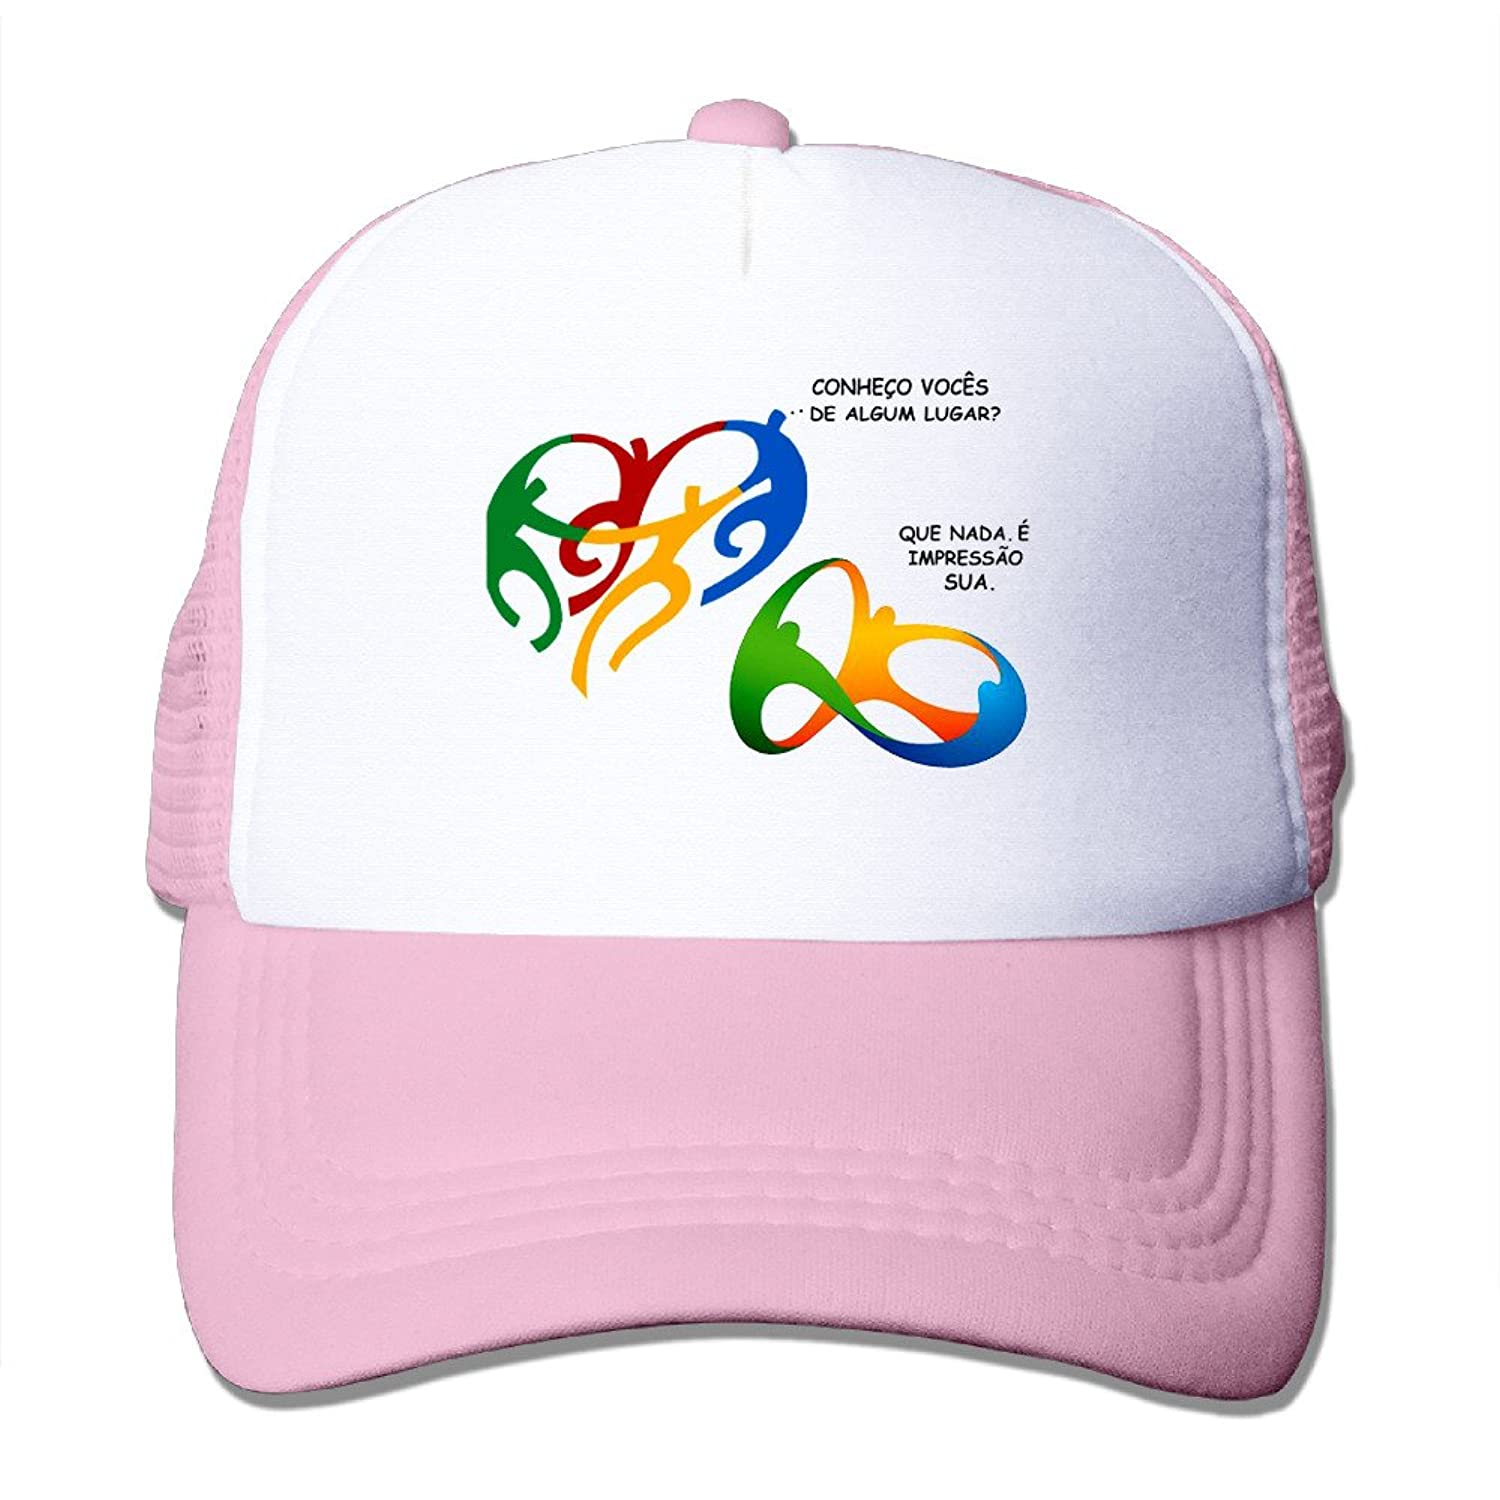 Funny 2016 Rio Adult Nylon Adjustable Mesh Hat Sun Hat Pink One Size Fits Most